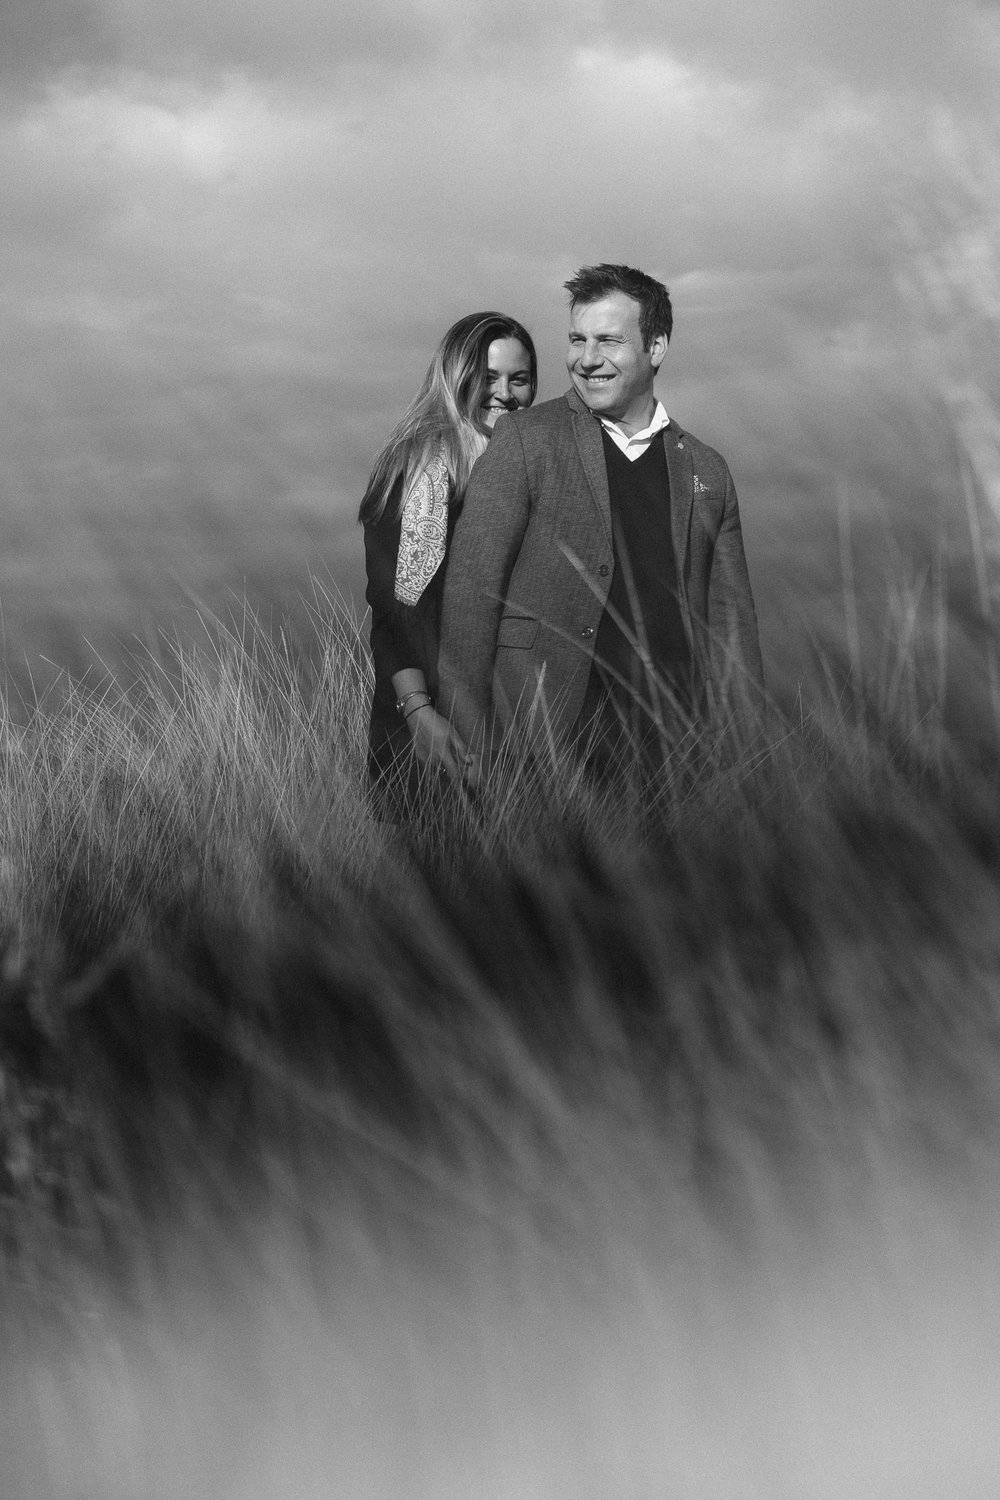 Couple laugh while cuddling amongst sand dunes in black and white